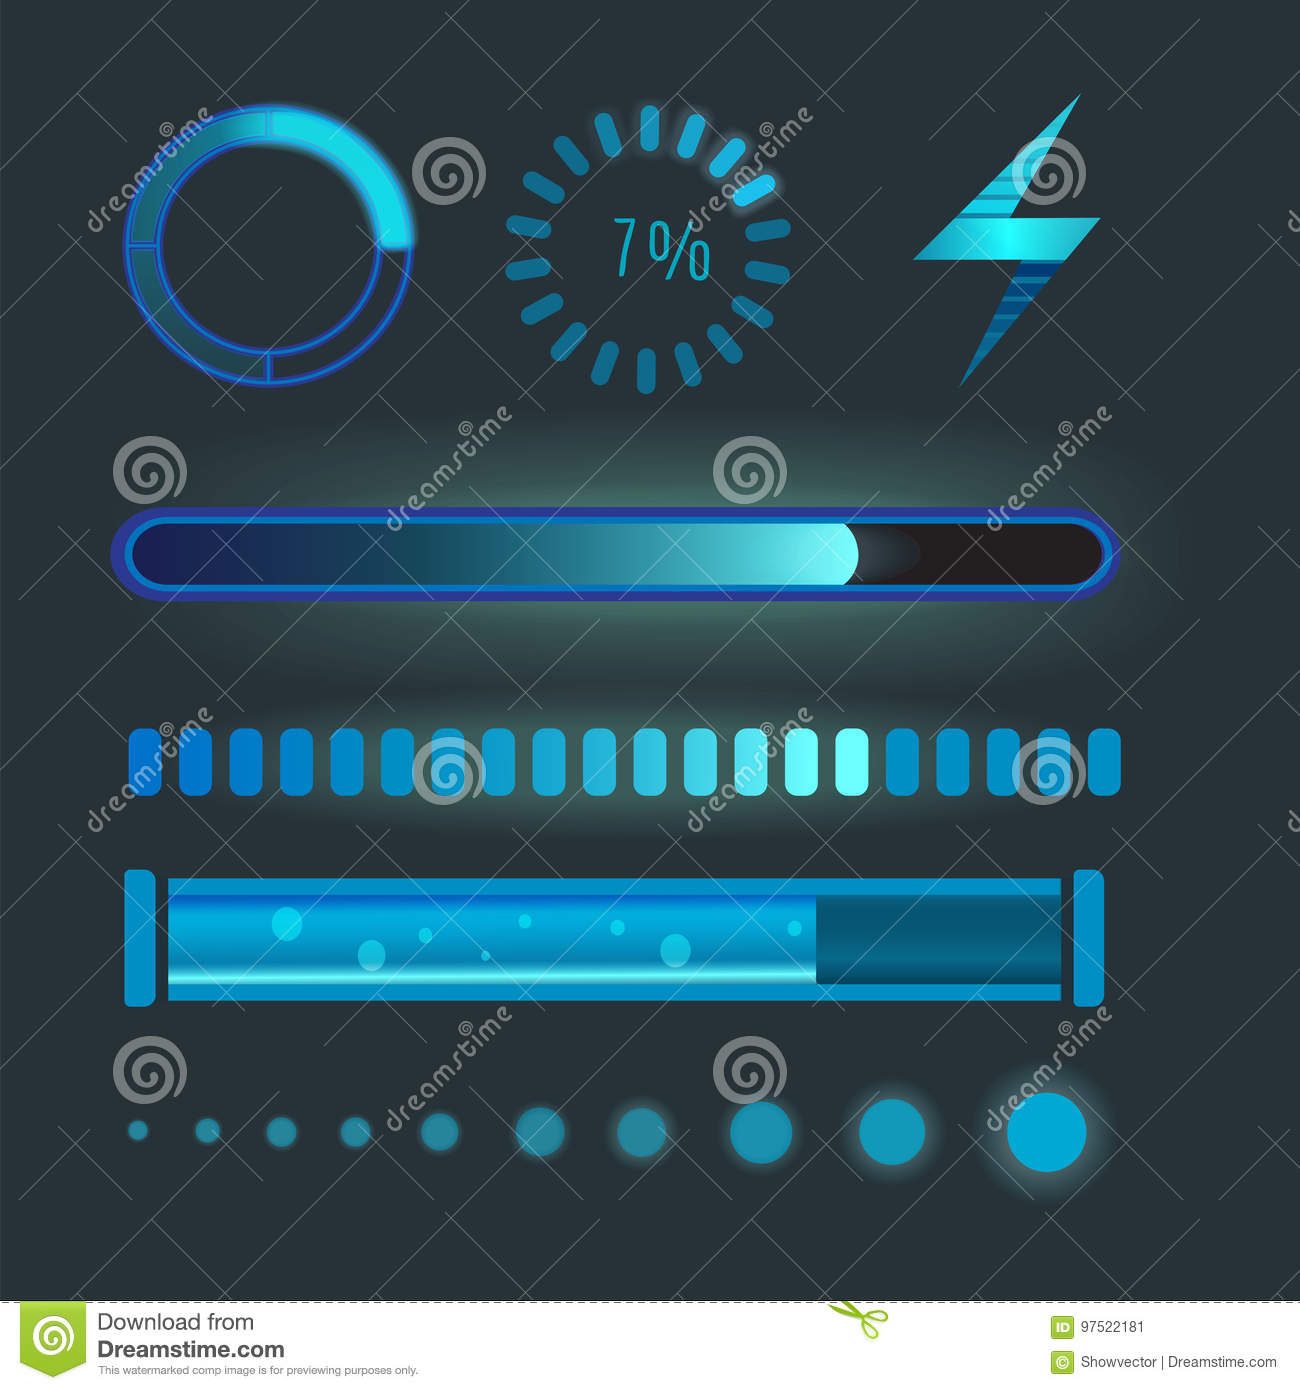 Vector icons for mobile applications design web internet loading interface download media button.